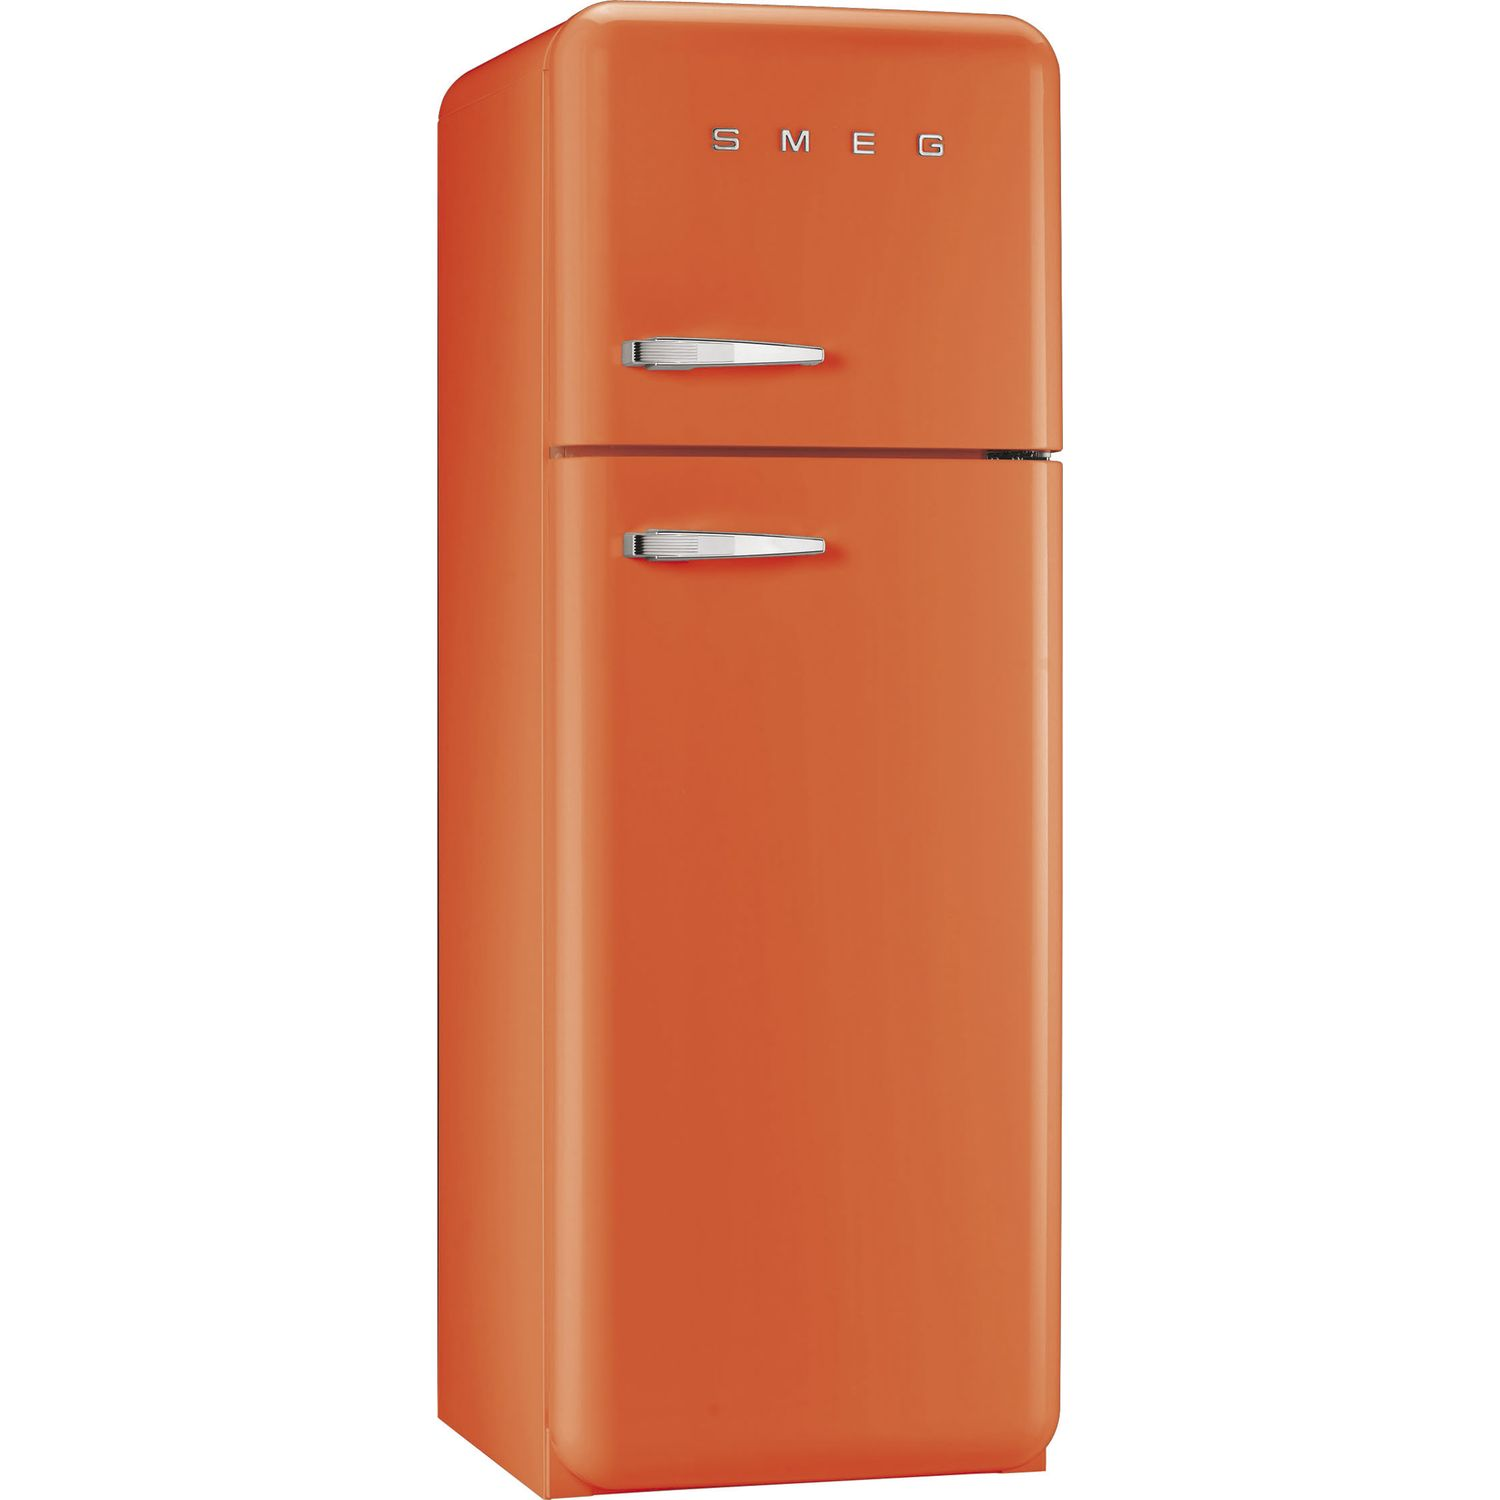 smeg standk hlschrank m gefrierraum fab30lo1 a orange linksanschlag. Black Bedroom Furniture Sets. Home Design Ideas